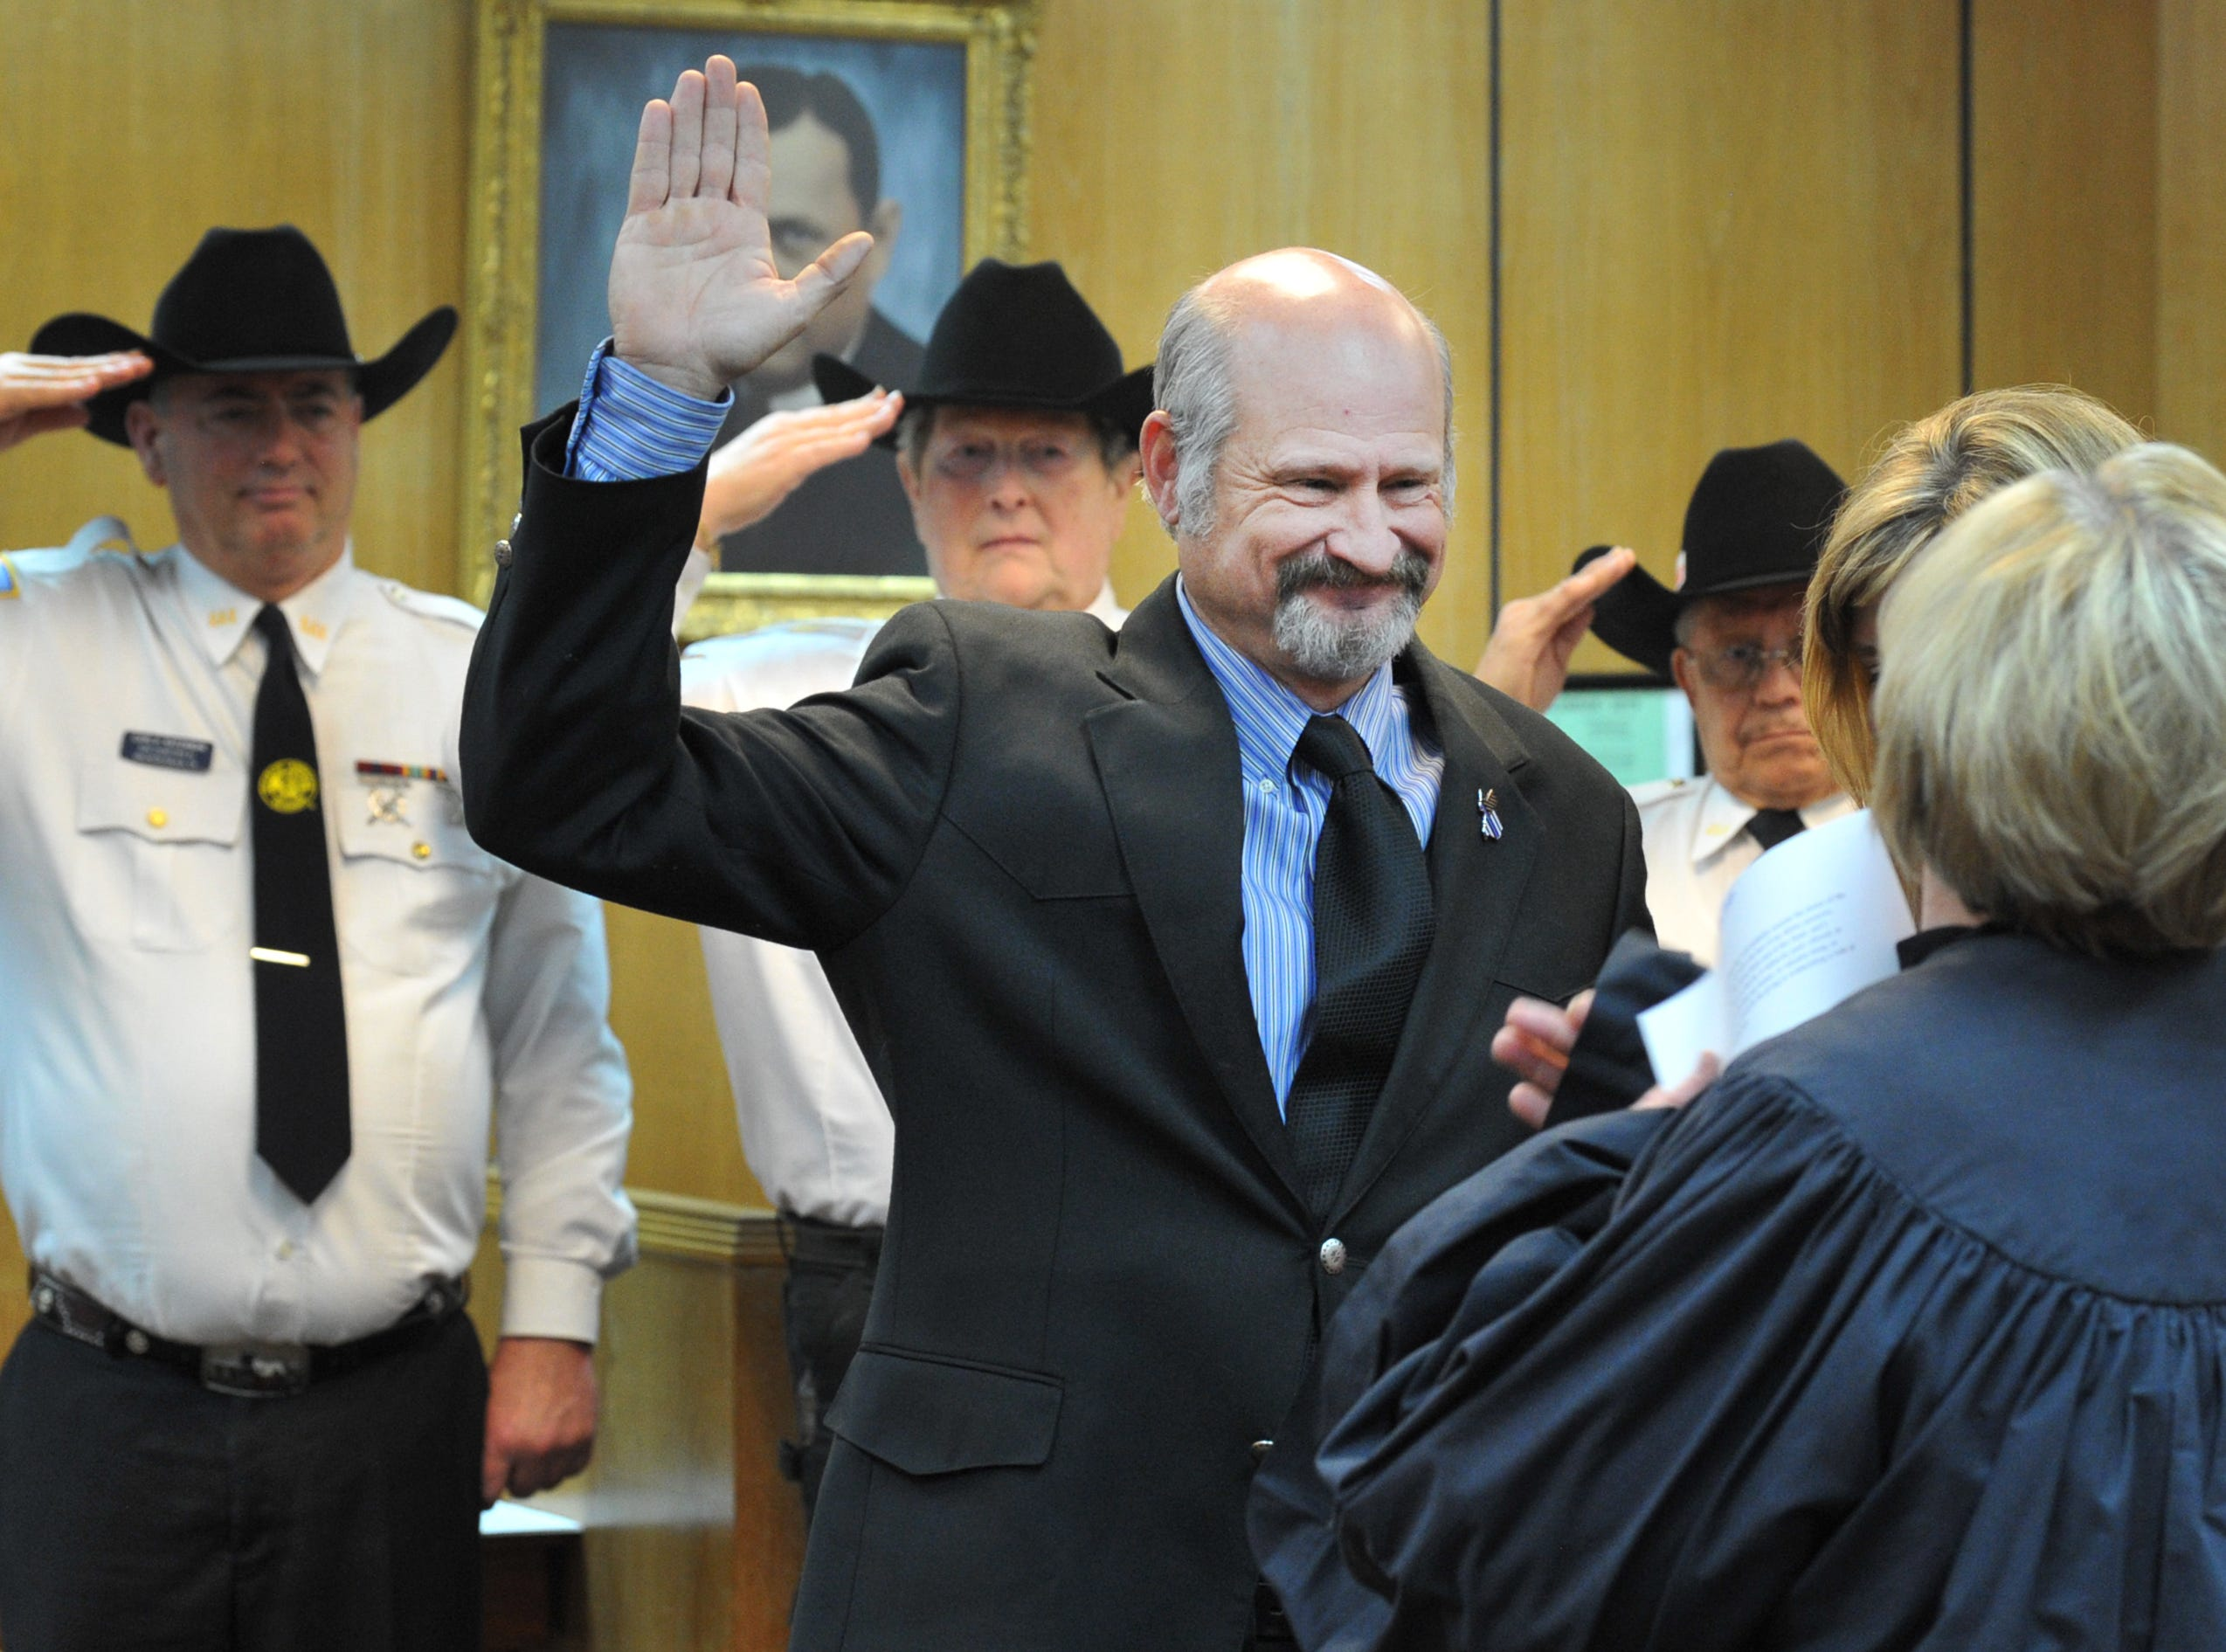 Rodney Burchett was sworn in as Justice of the Peace Precinct 2 during a ceremony held in the 30th district courtroom, Tuesday morning.